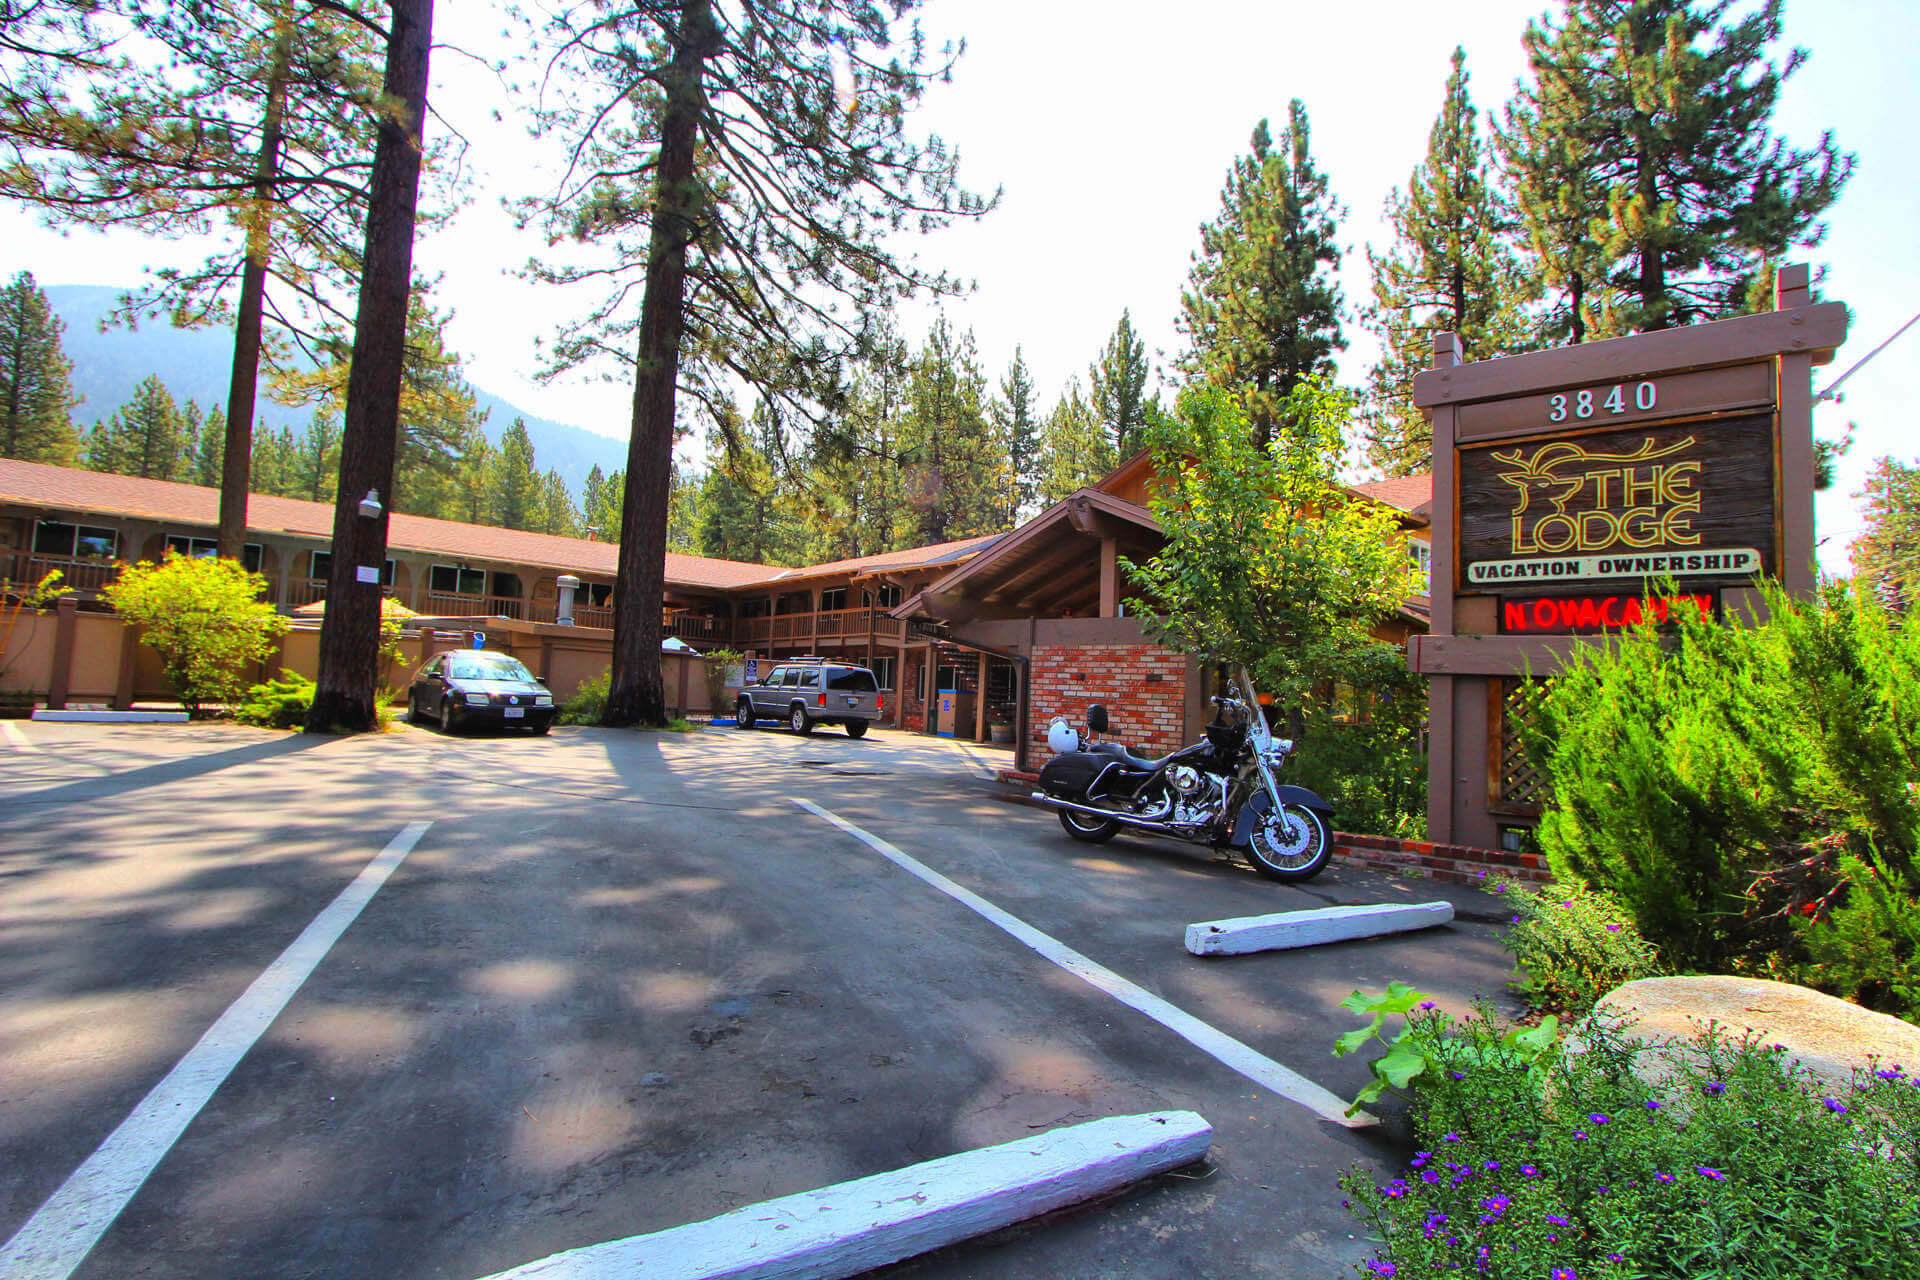 The Lodge At Lake Tahoe Common Area